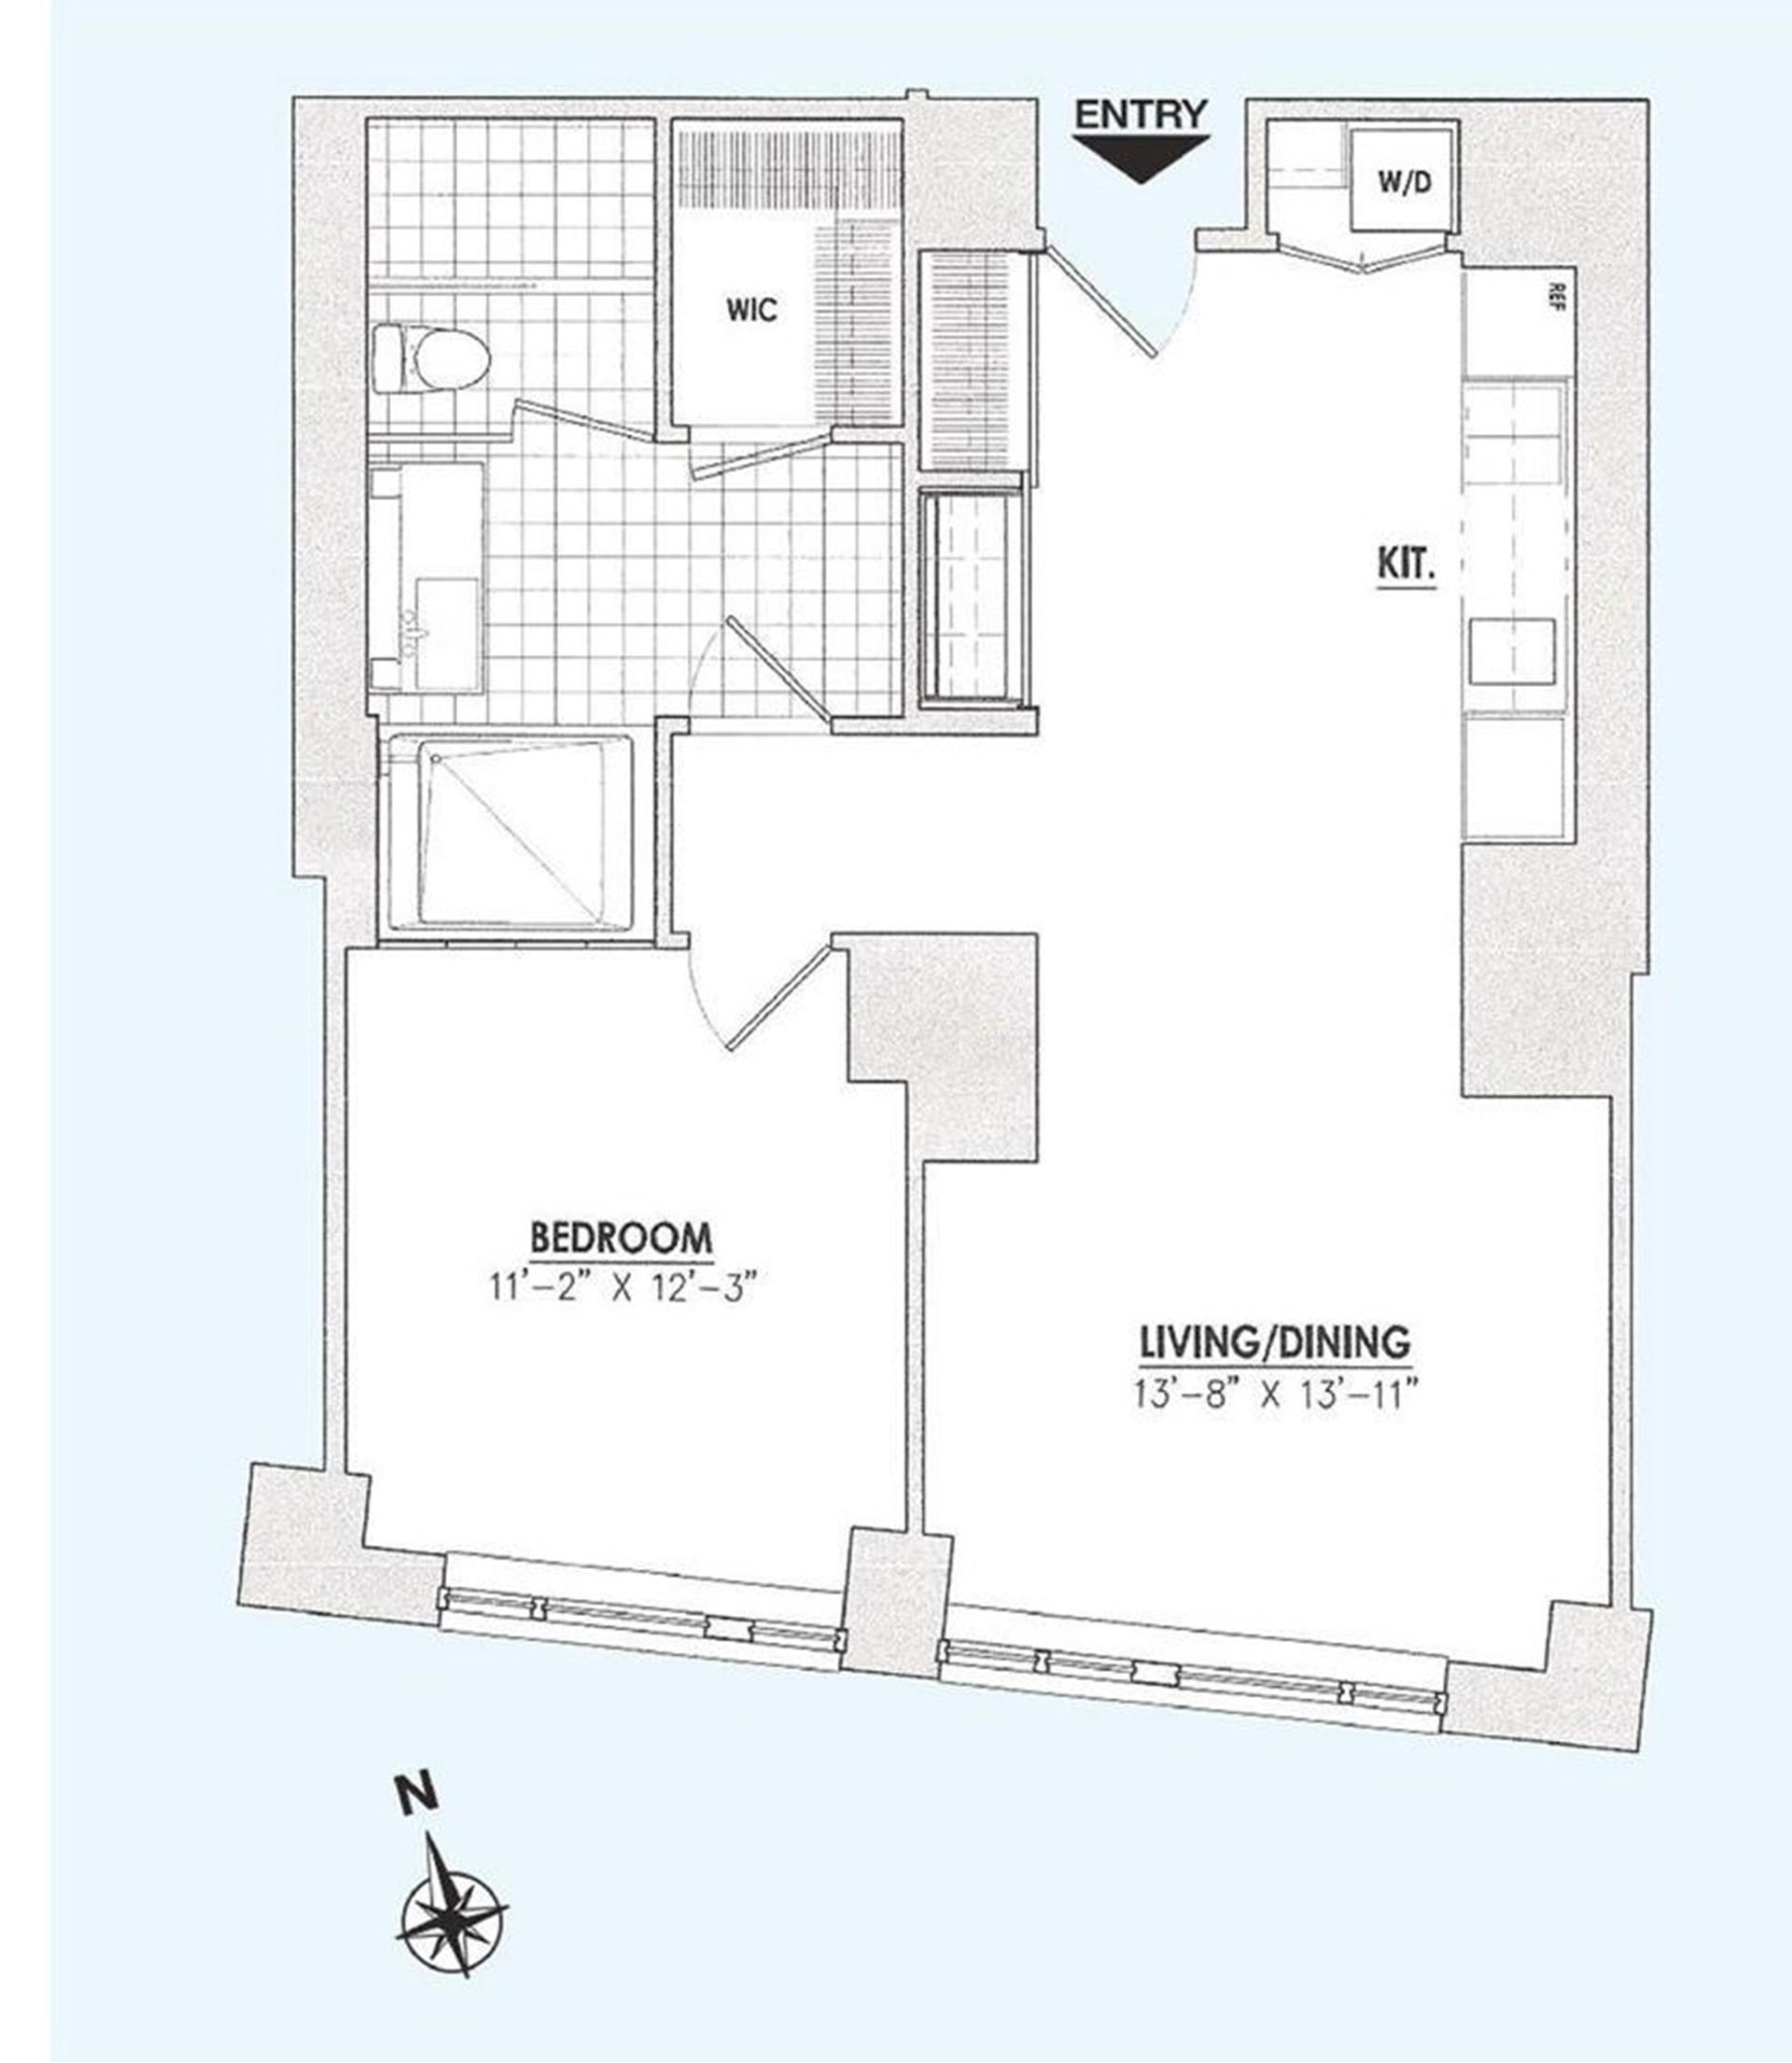 Floor plan of 15 William, 15 William St, 30B - Financial District, New York